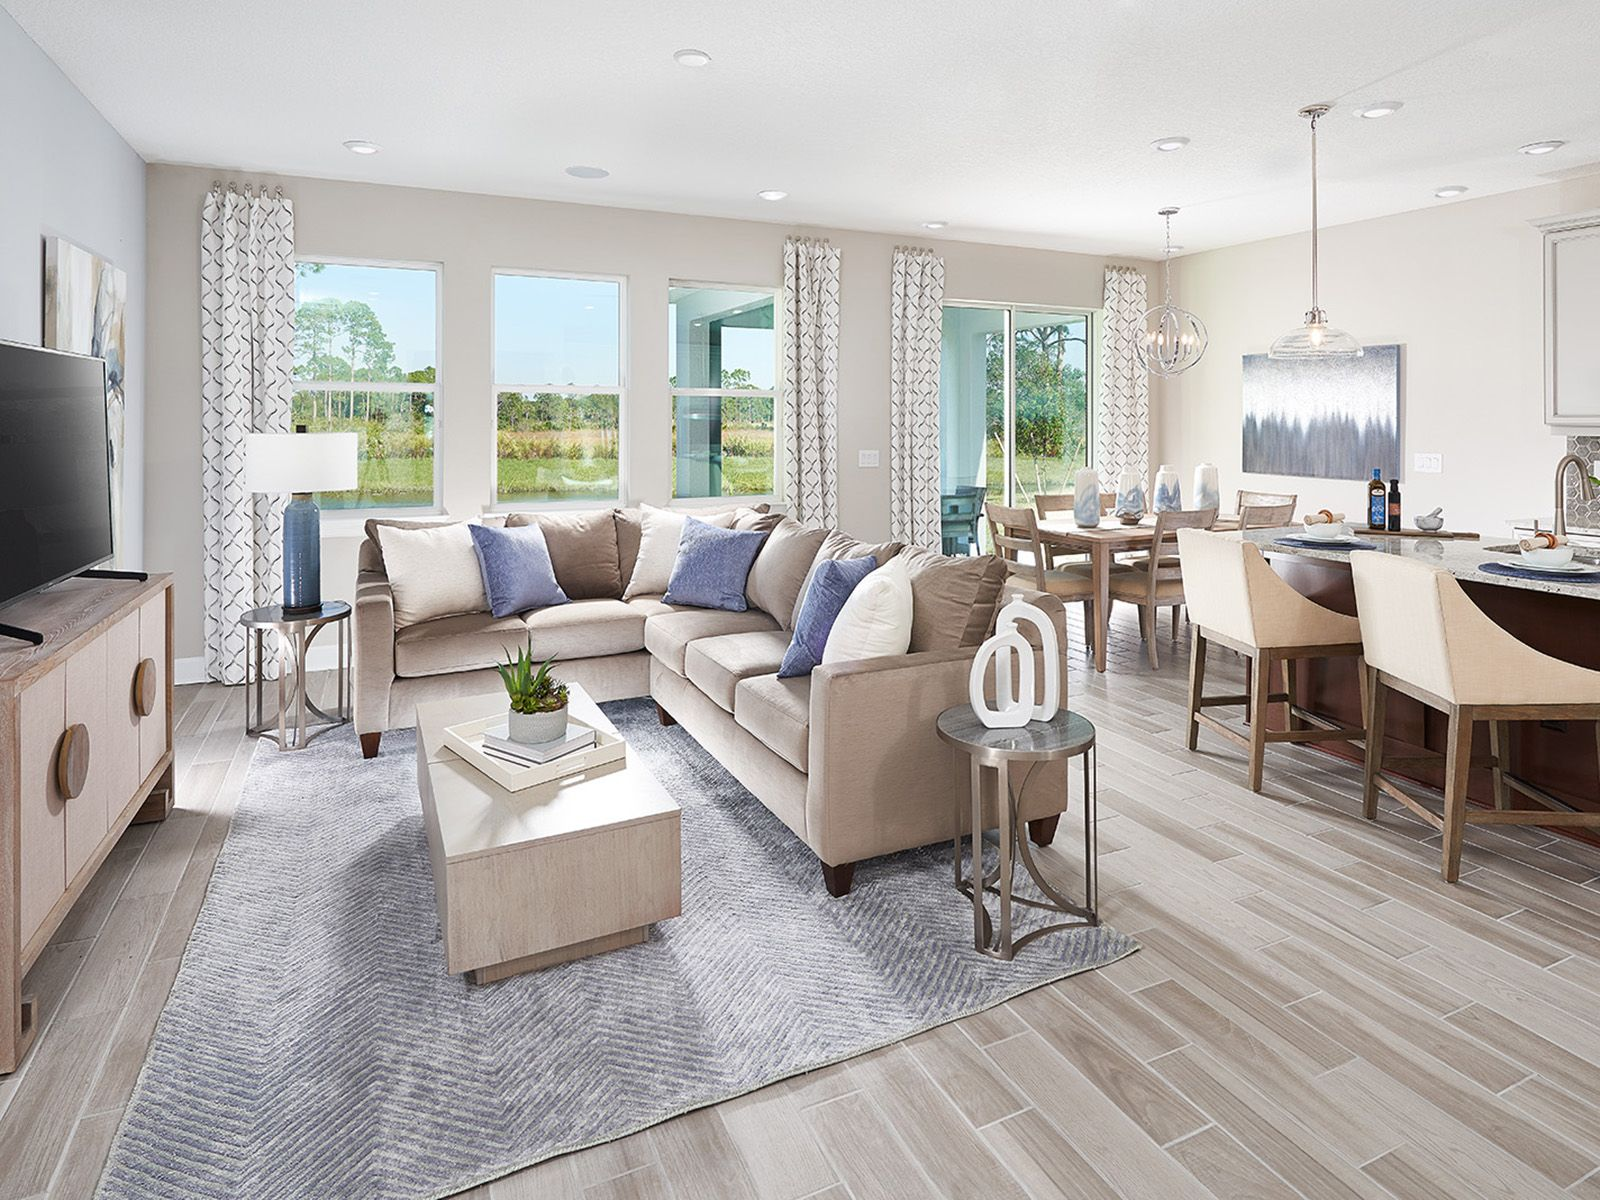 Living Area featured in the Meyer By Meritage Homes in Tampa-St. Petersburg, FL